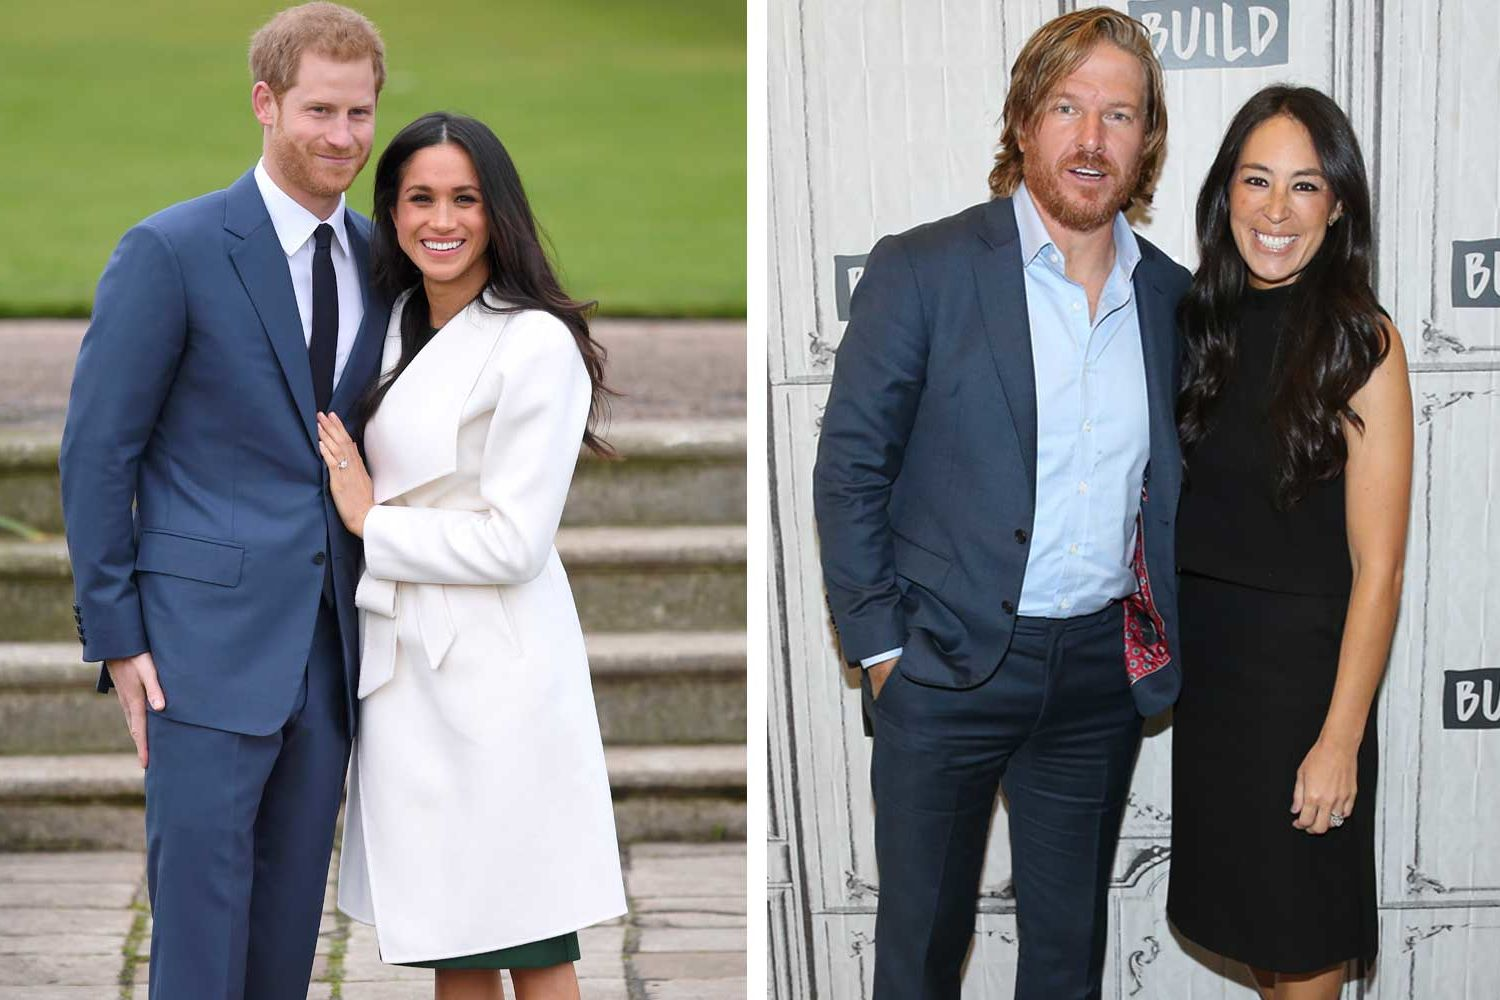 We Need to Talk About the Resemblance Between Prince Harry and Meghan Markle and Chip and Joanna Gaines